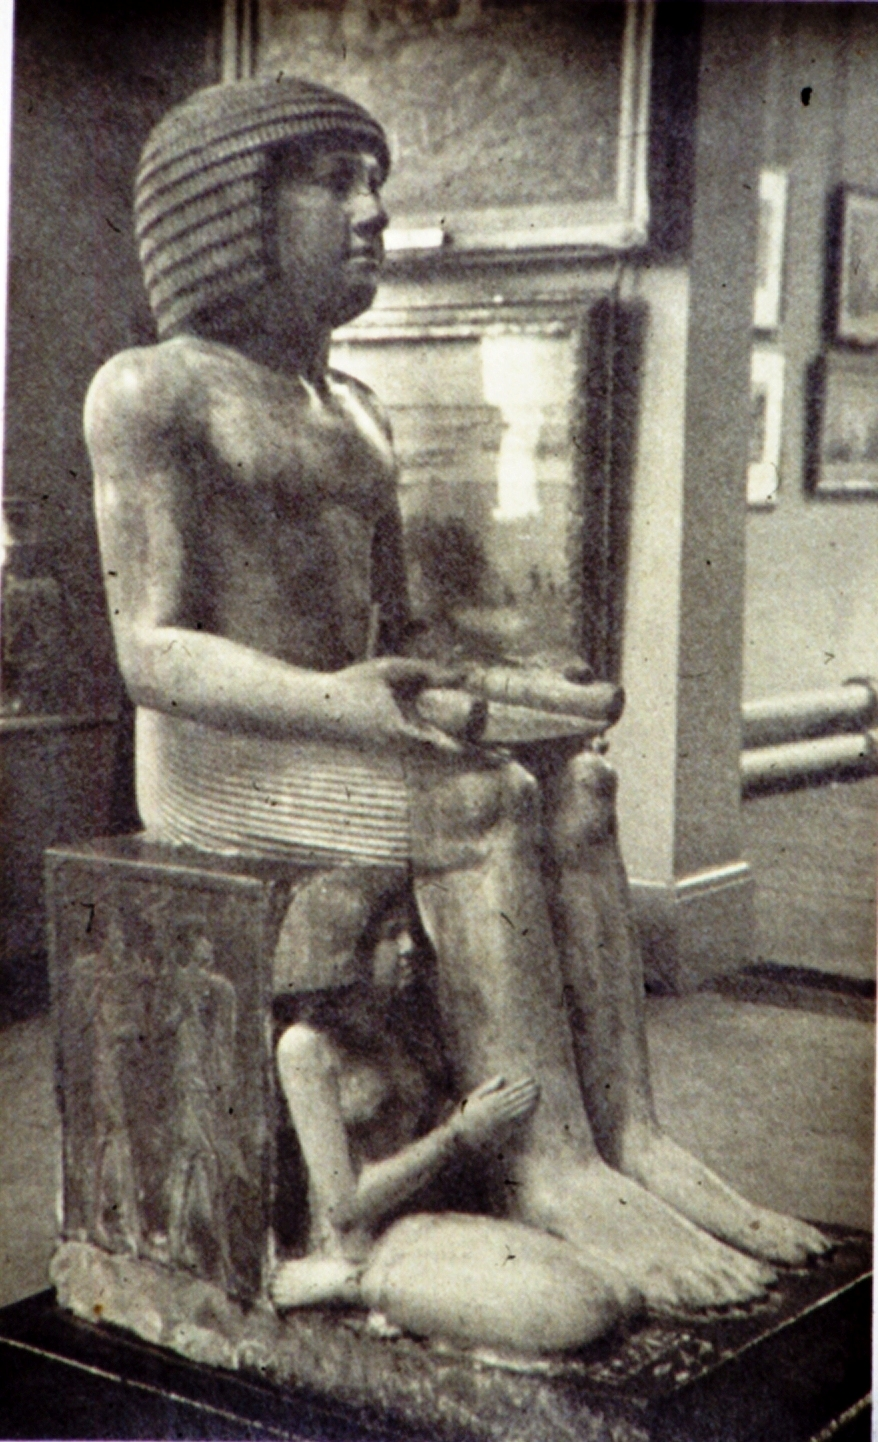 The Sekhemka Stature on display at the Northampton Museum and Art Gallery in the 1950s